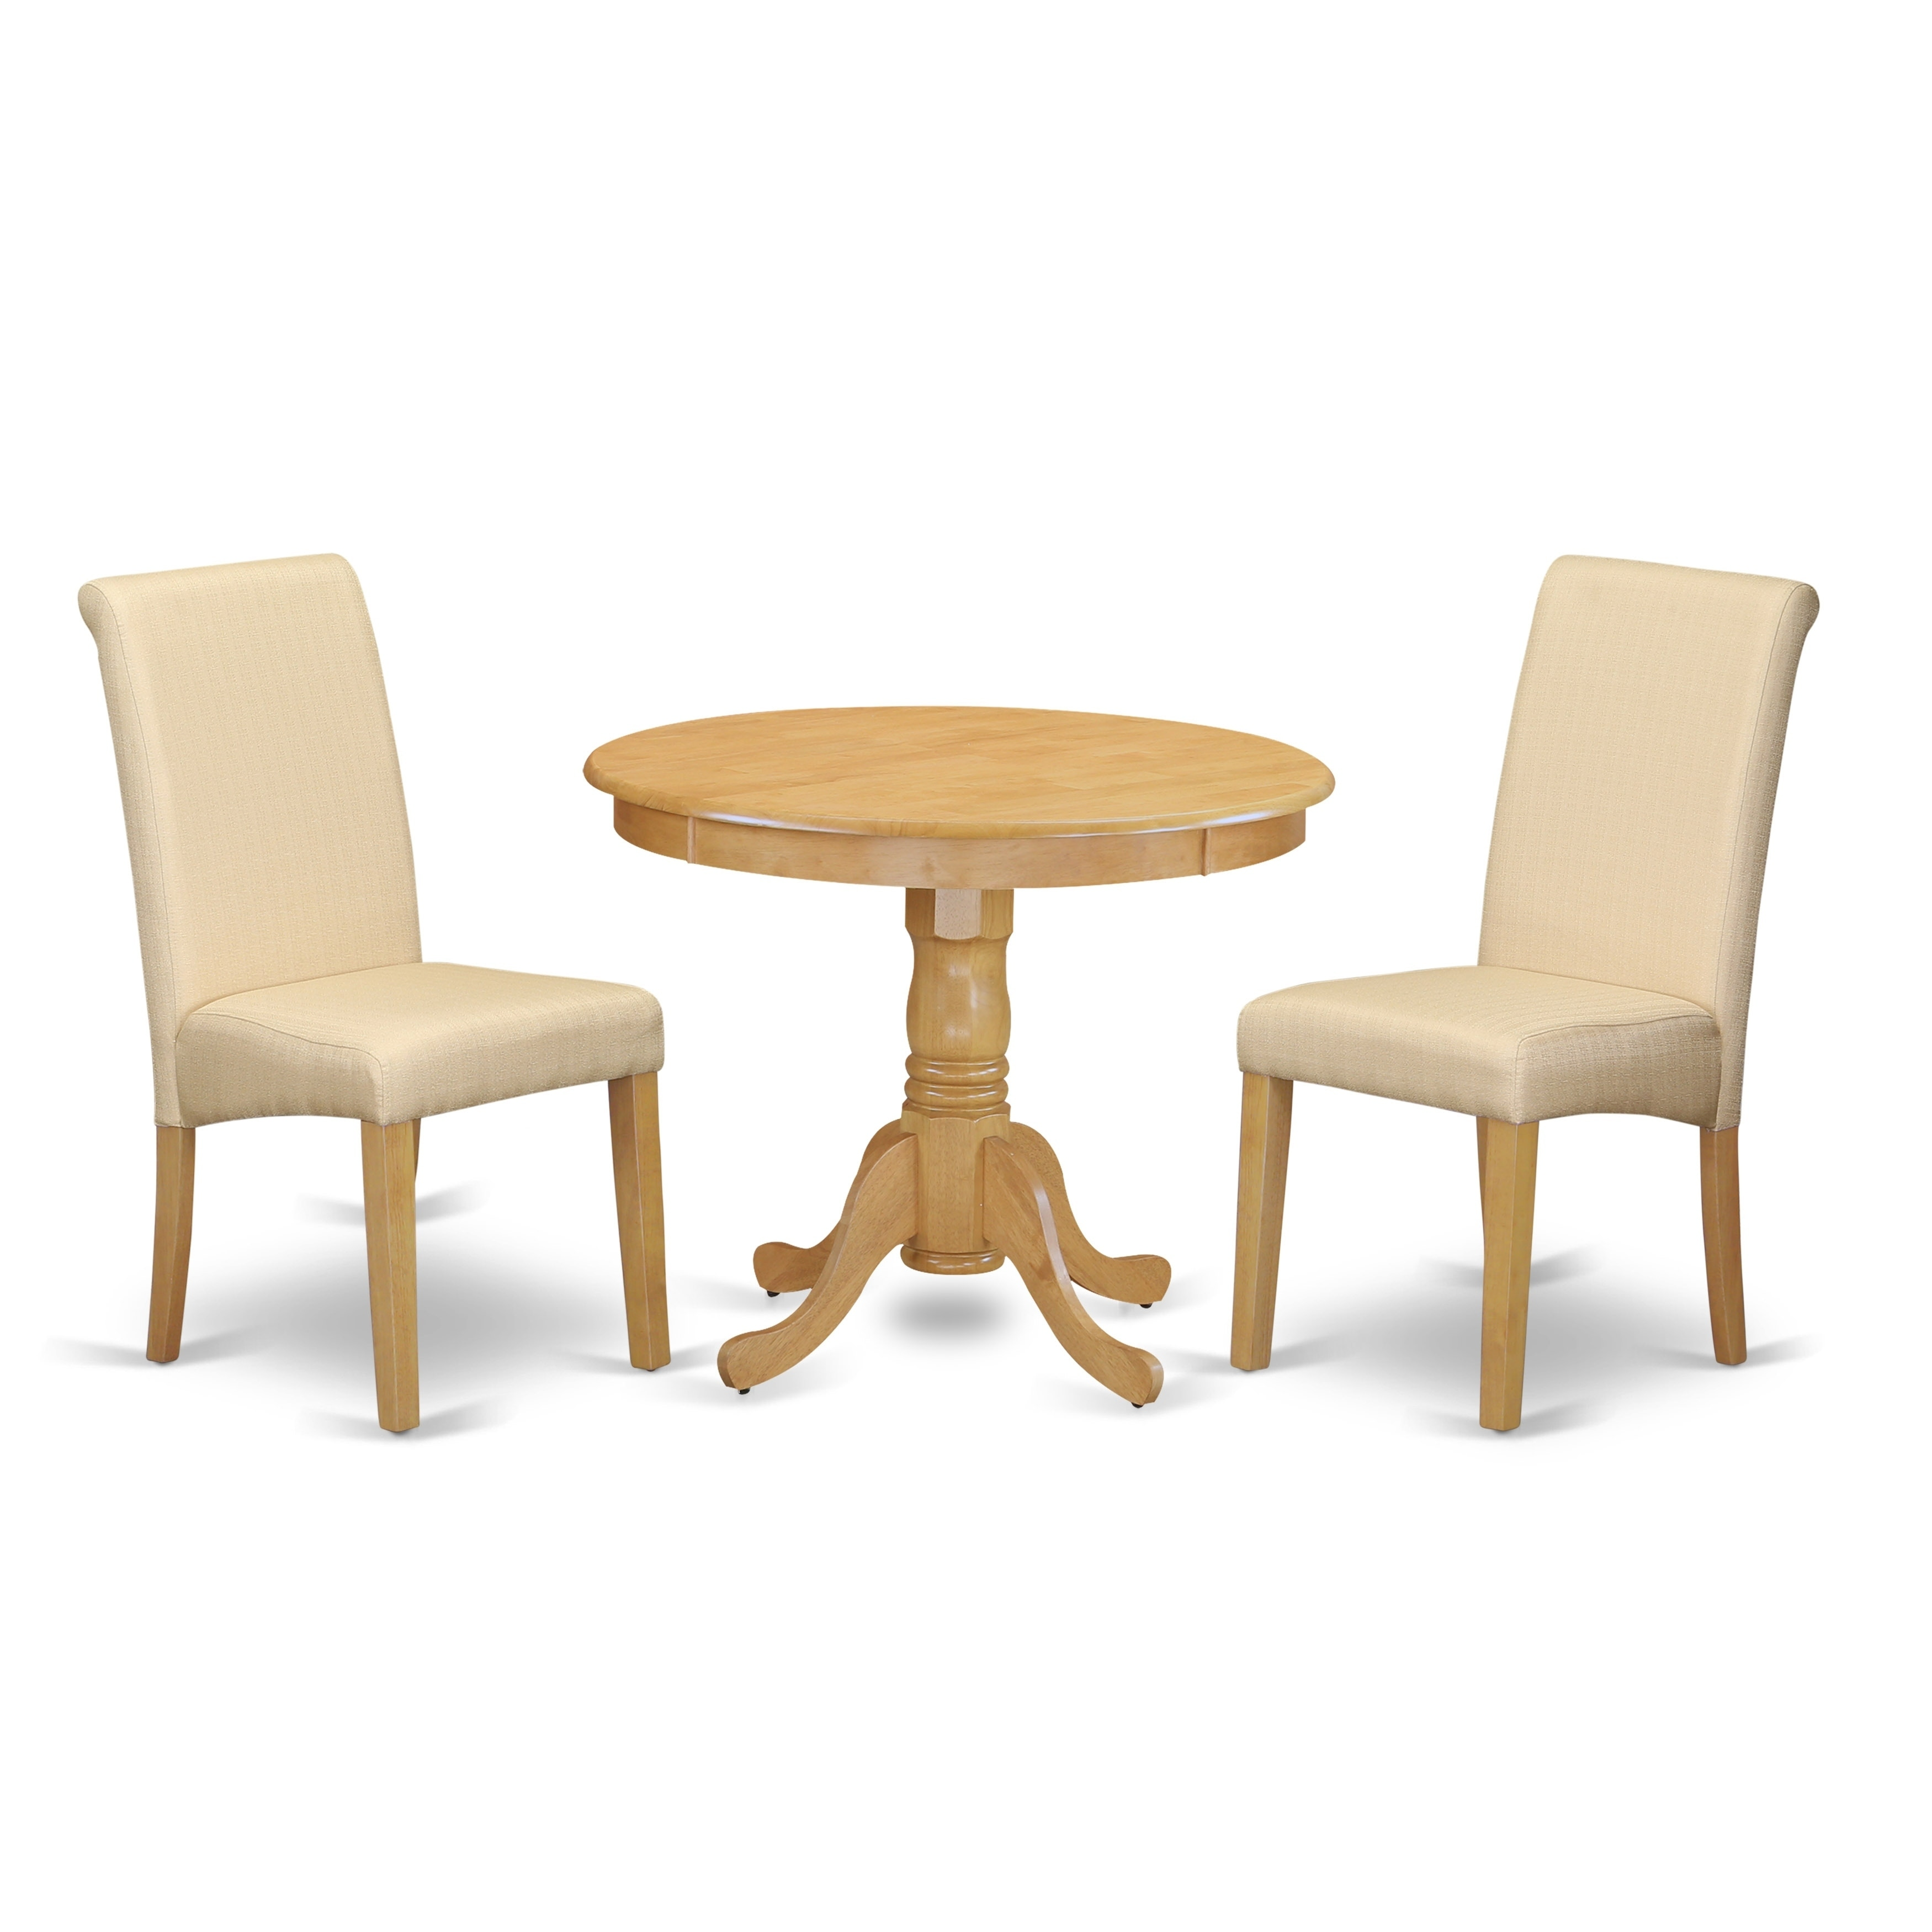 3pc Small Round Kitchen Table With Elegant Parson Chairs Number Of Chair Option